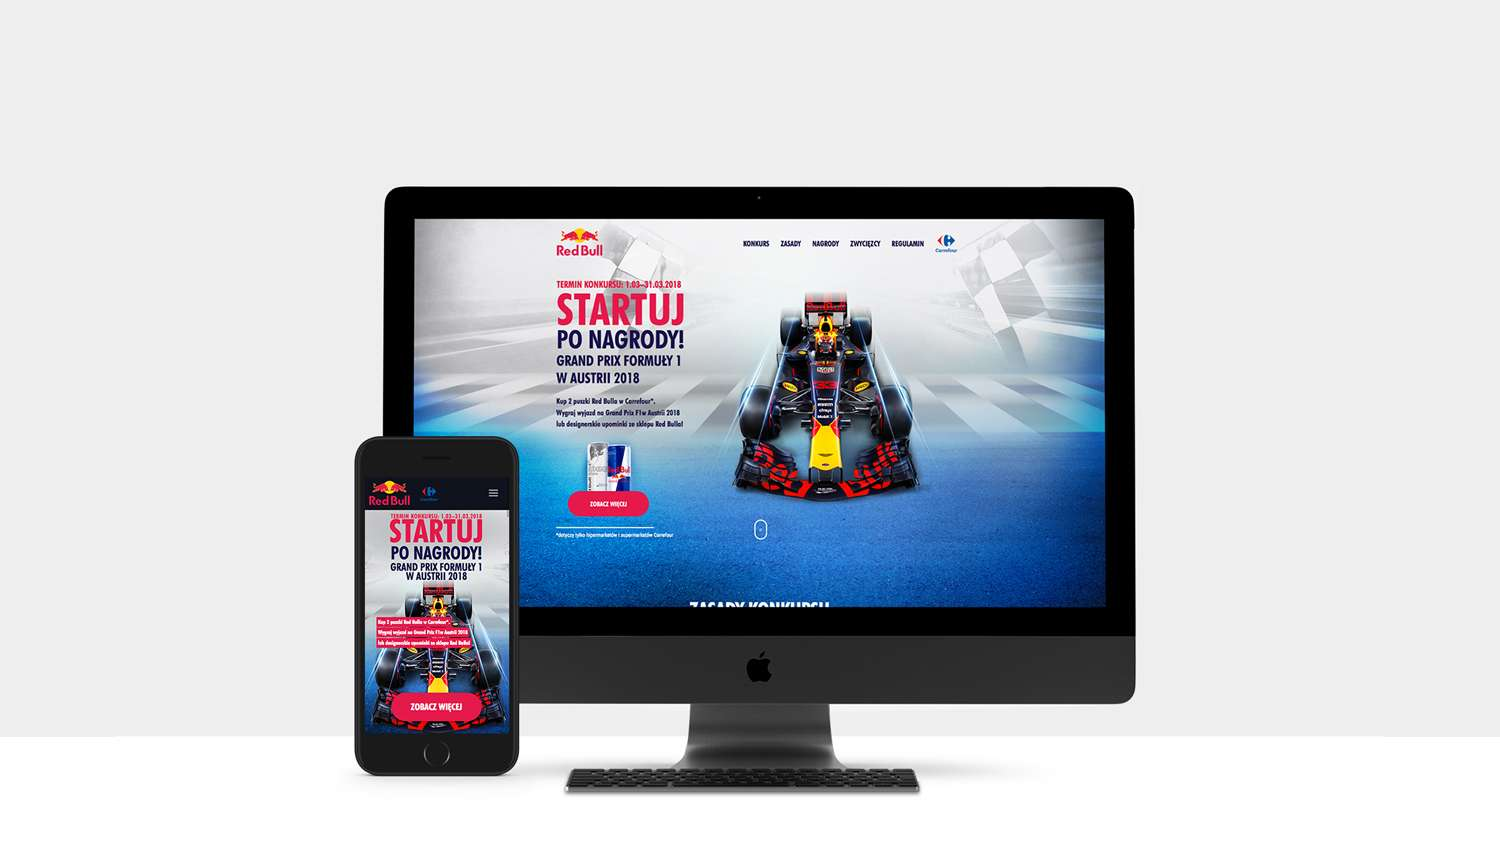 Eskadra - Enter the race with Red Bull, win a trip to the Grand Prix F1 in Austria - RED BULL SP Z O O